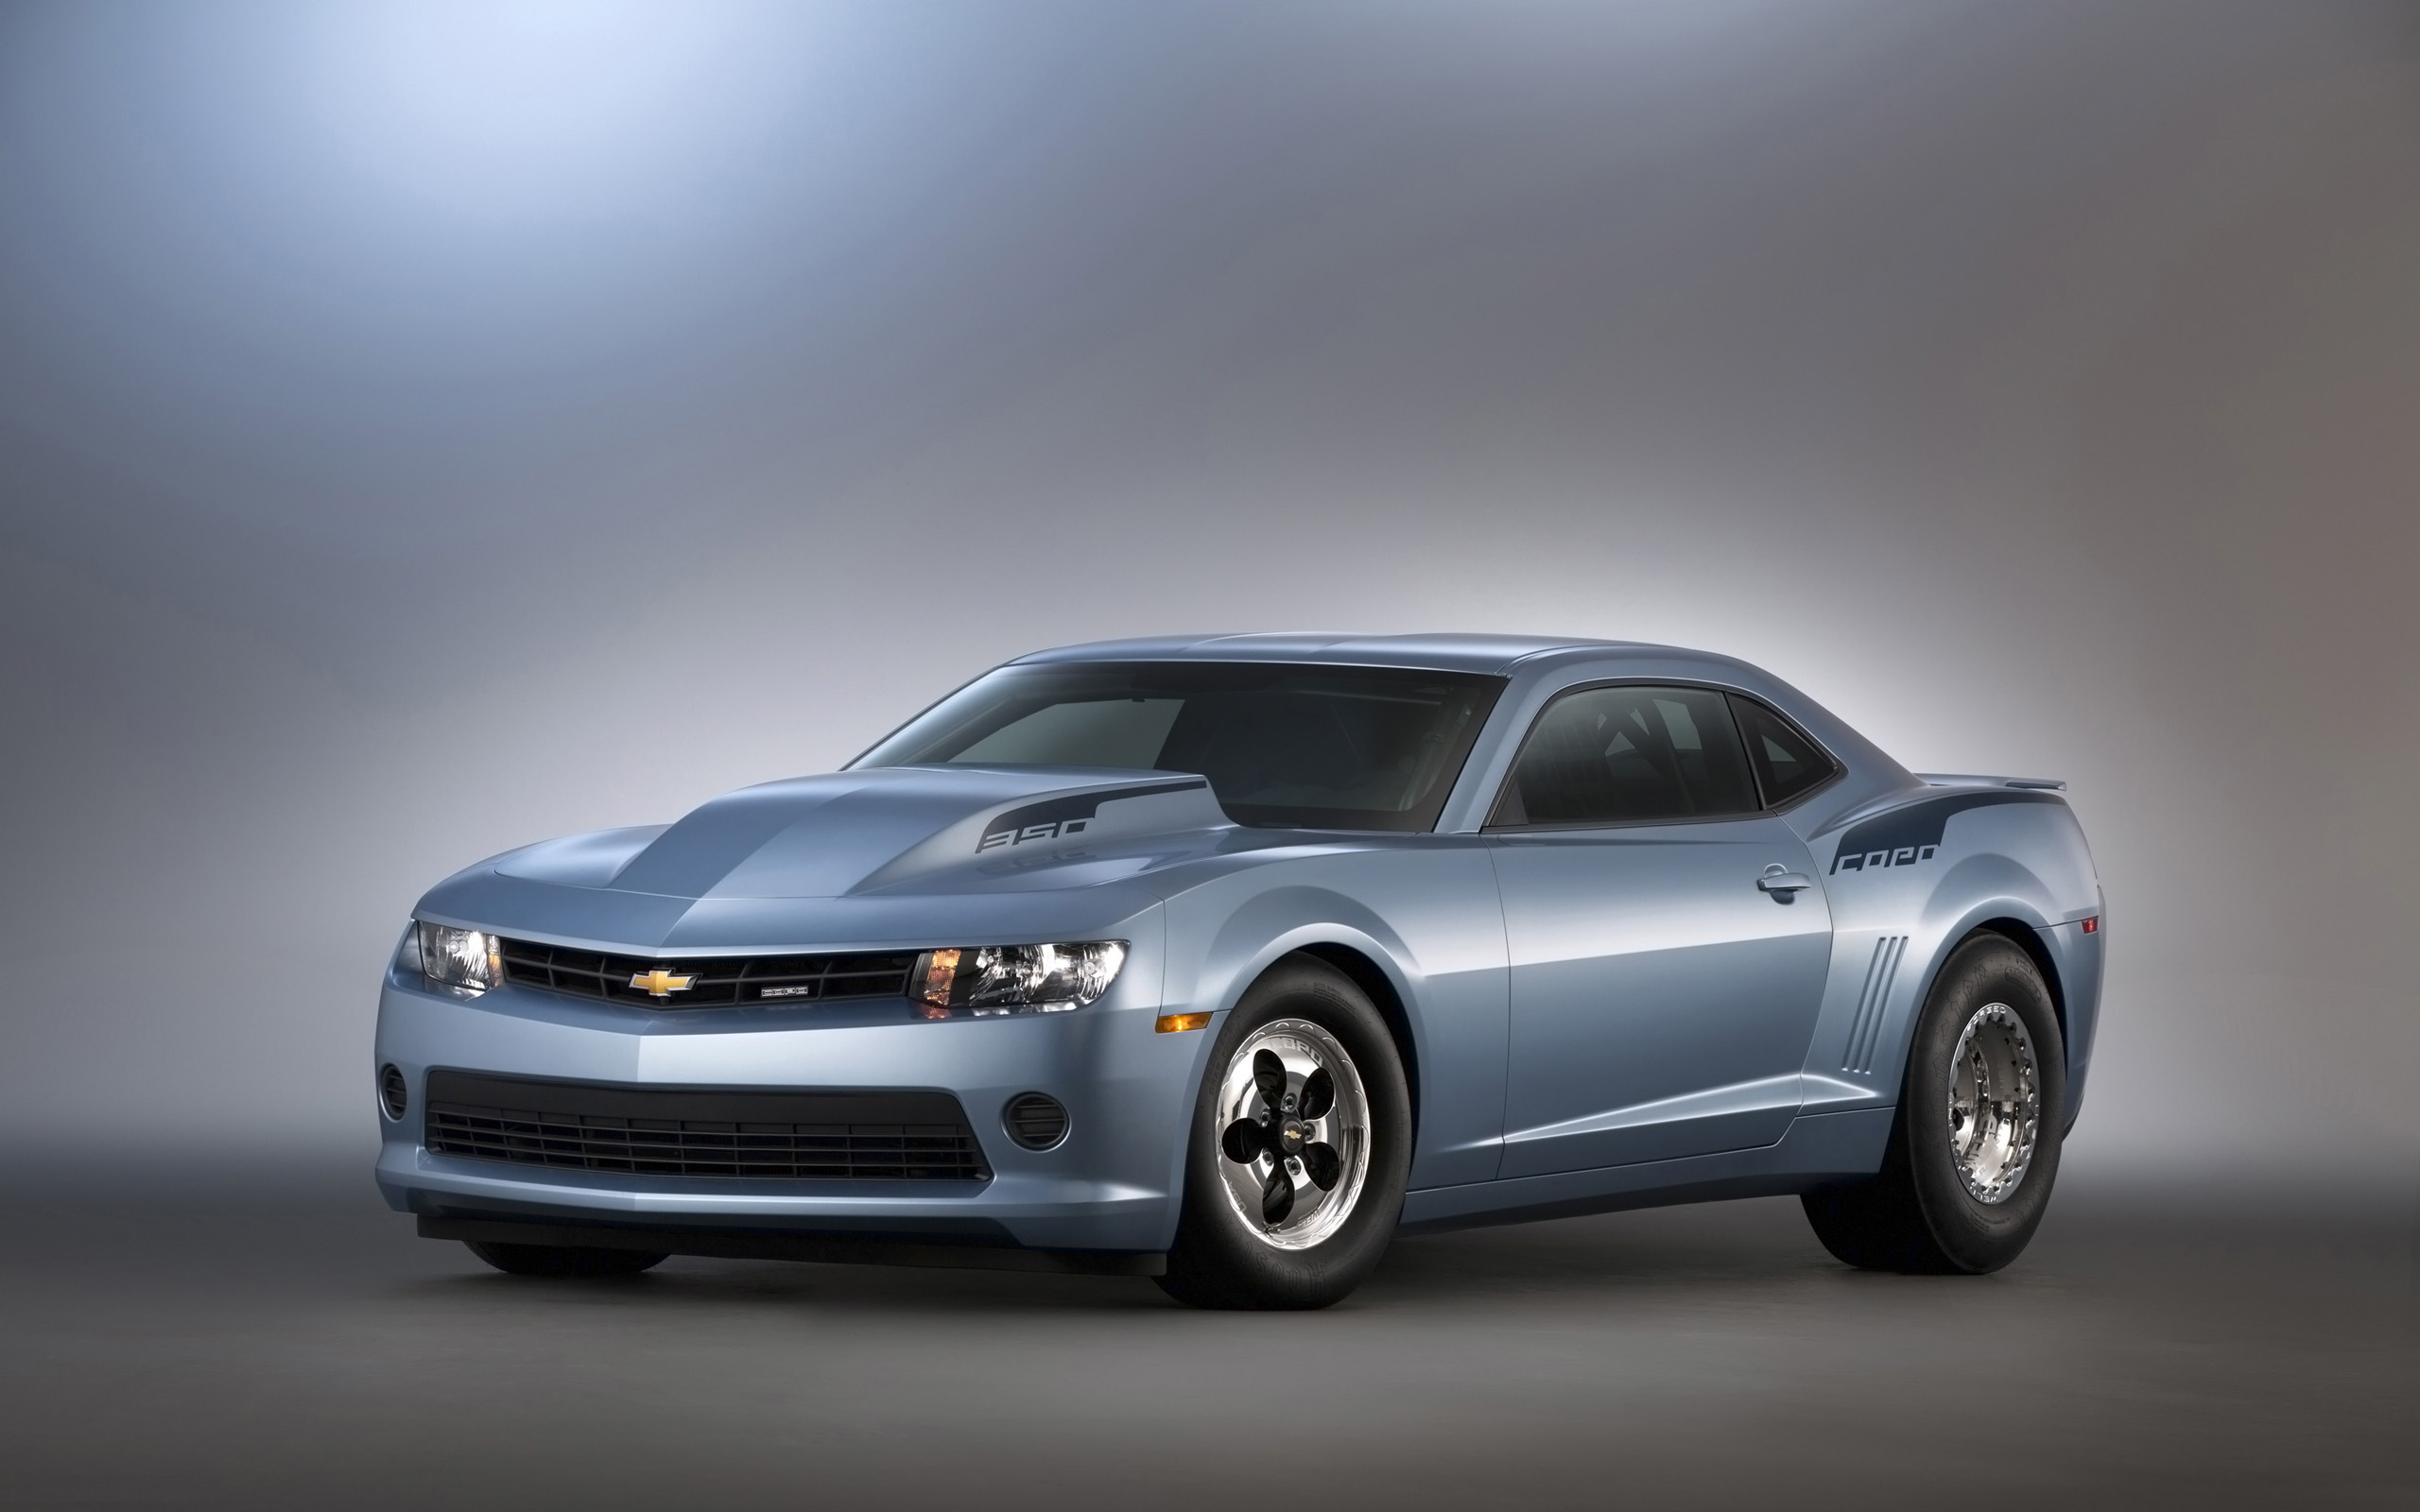 2014 copo camaro wallpaper | hd car wallpapers | id #3896